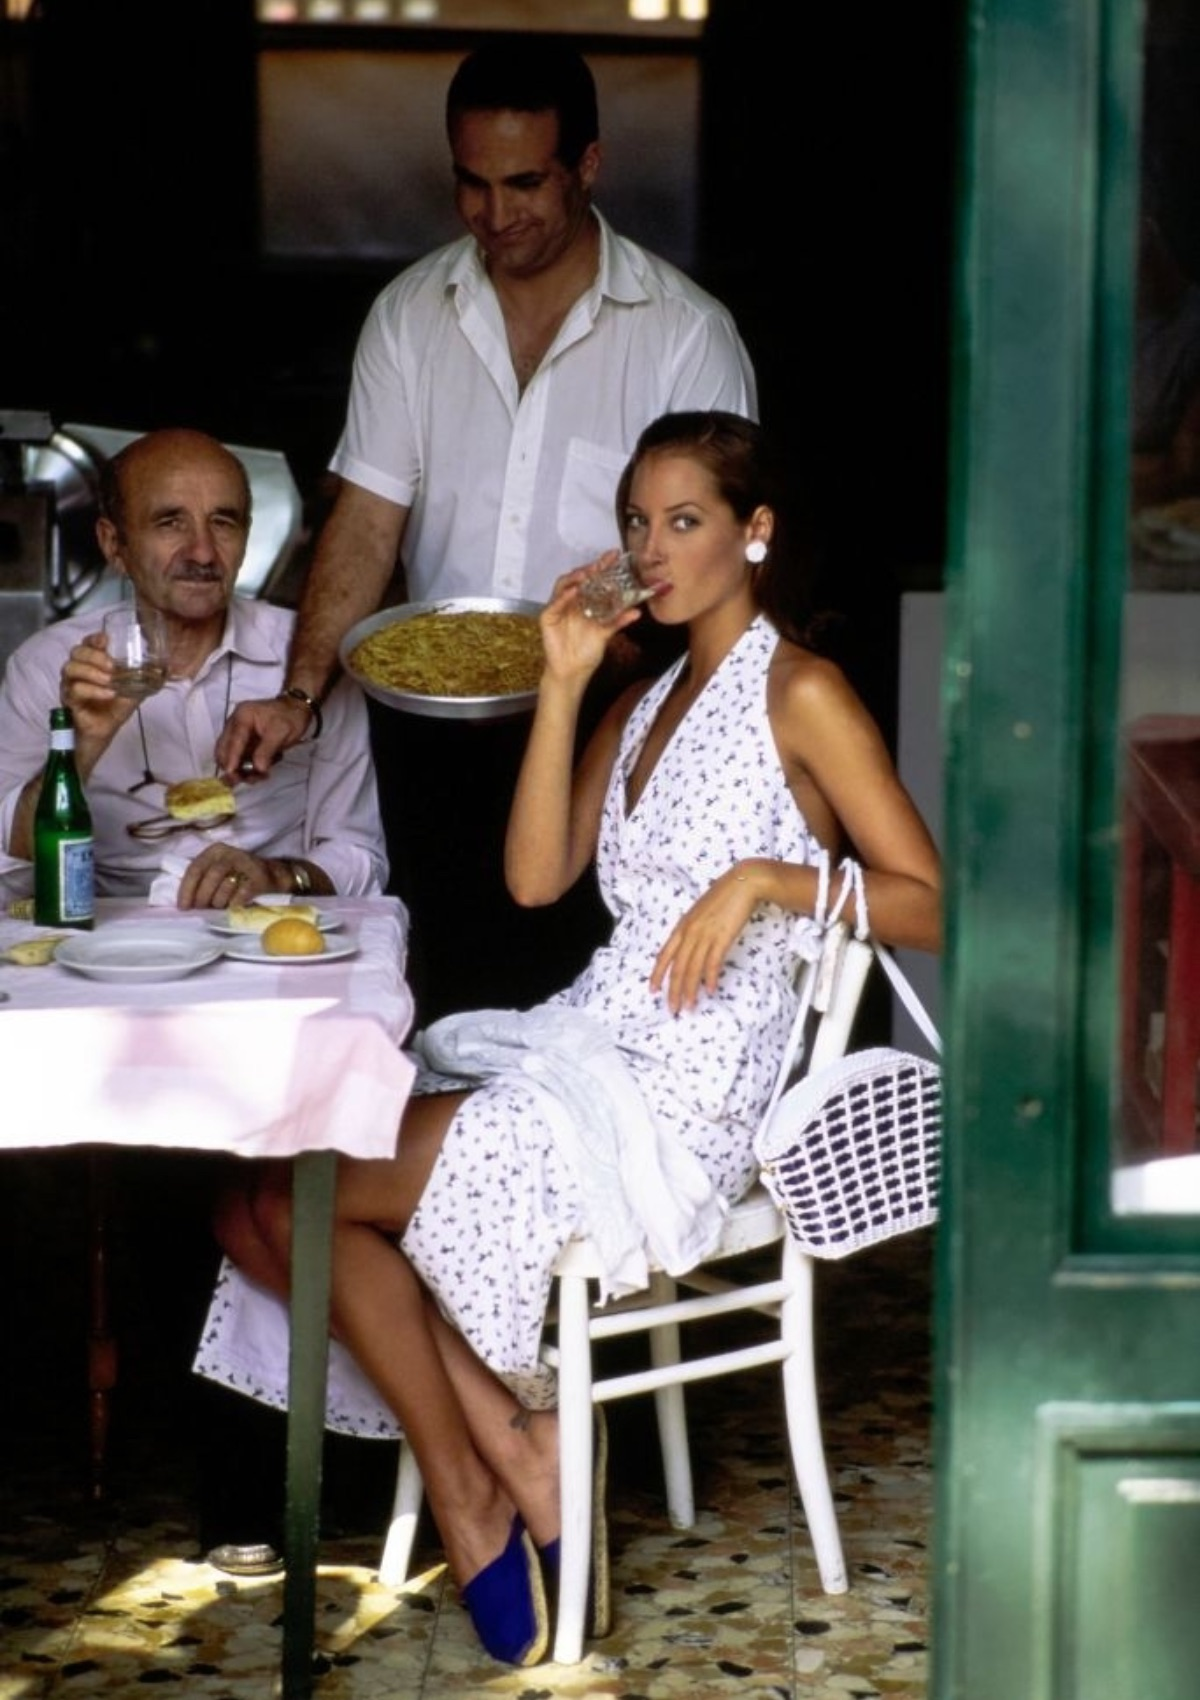 The model Christy Turlington at lunch in a restaurant in Portofino